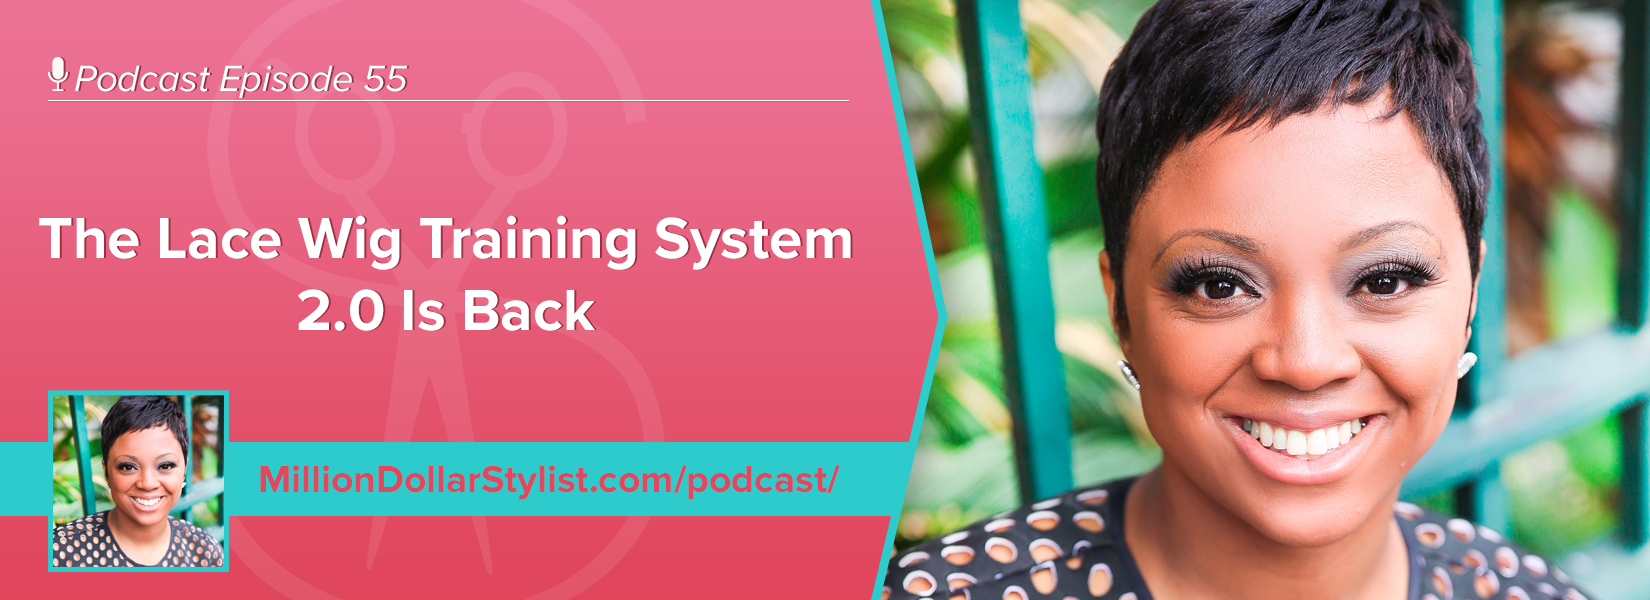 Episode 55 - The Lace Wig Training System 2.0 Is Back 1